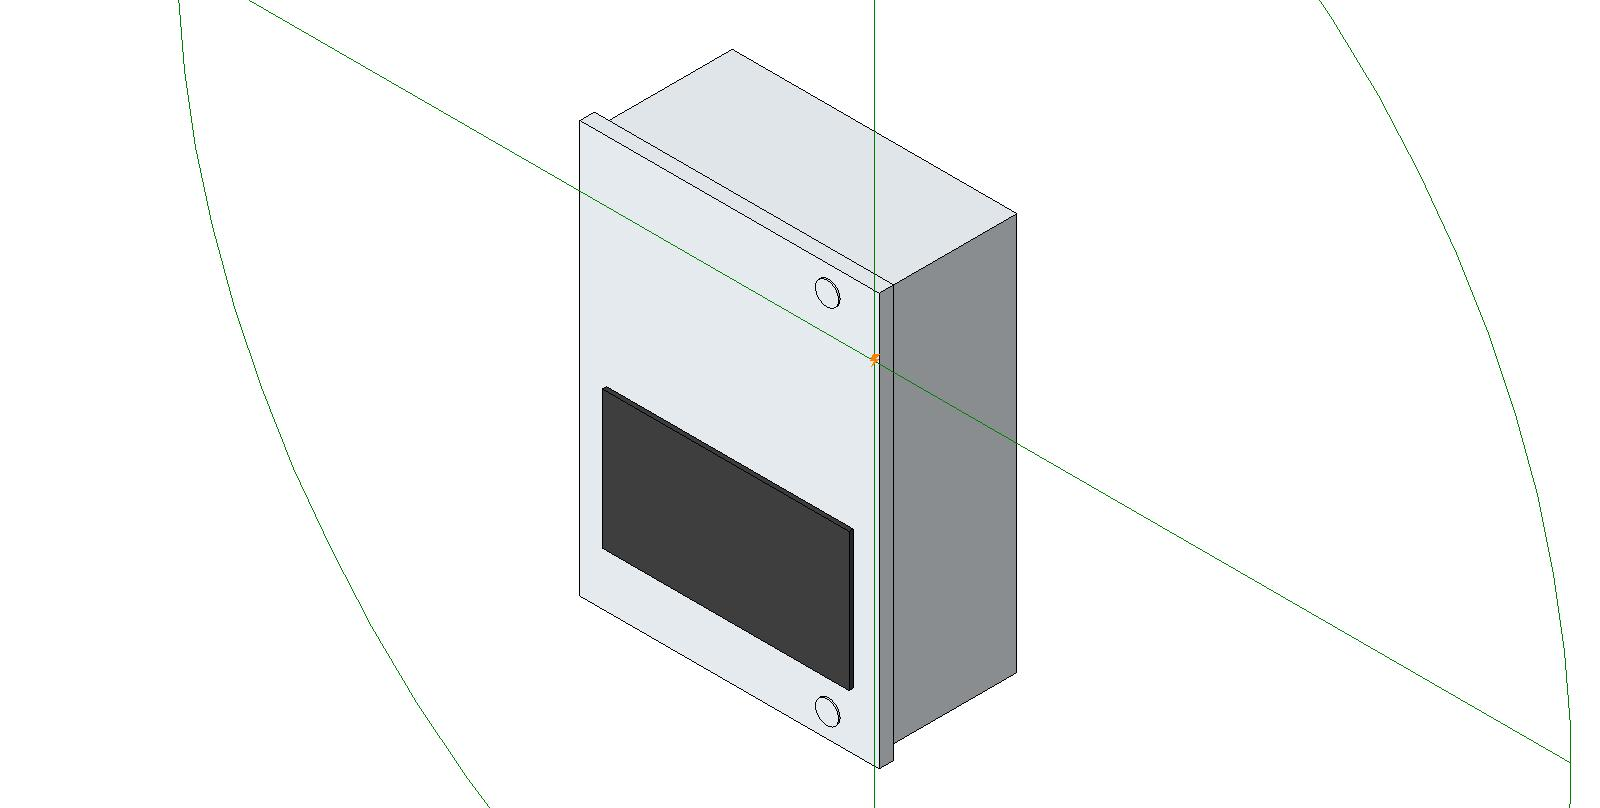 Leviton Mfg. Co., Inc. Wiring Devices BIM Objects / Families